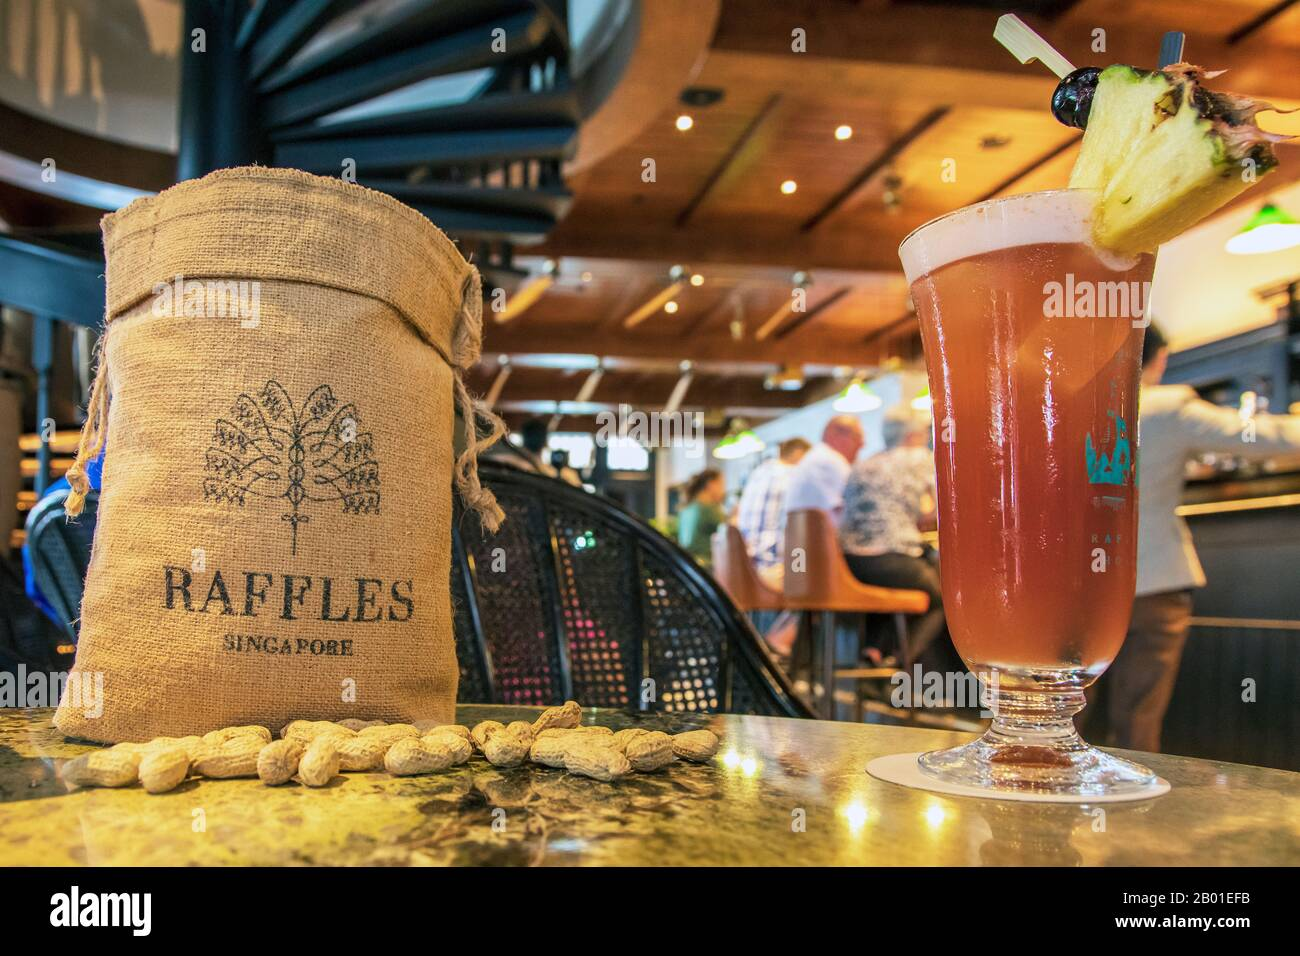 Inside The Famous Raffles Long Bar Singapore Showing A Traditional Bag Of Peanuts With The Raffles Name On It Alongside A Famous Gin Cocktail A Sin Stock Photo Alamy